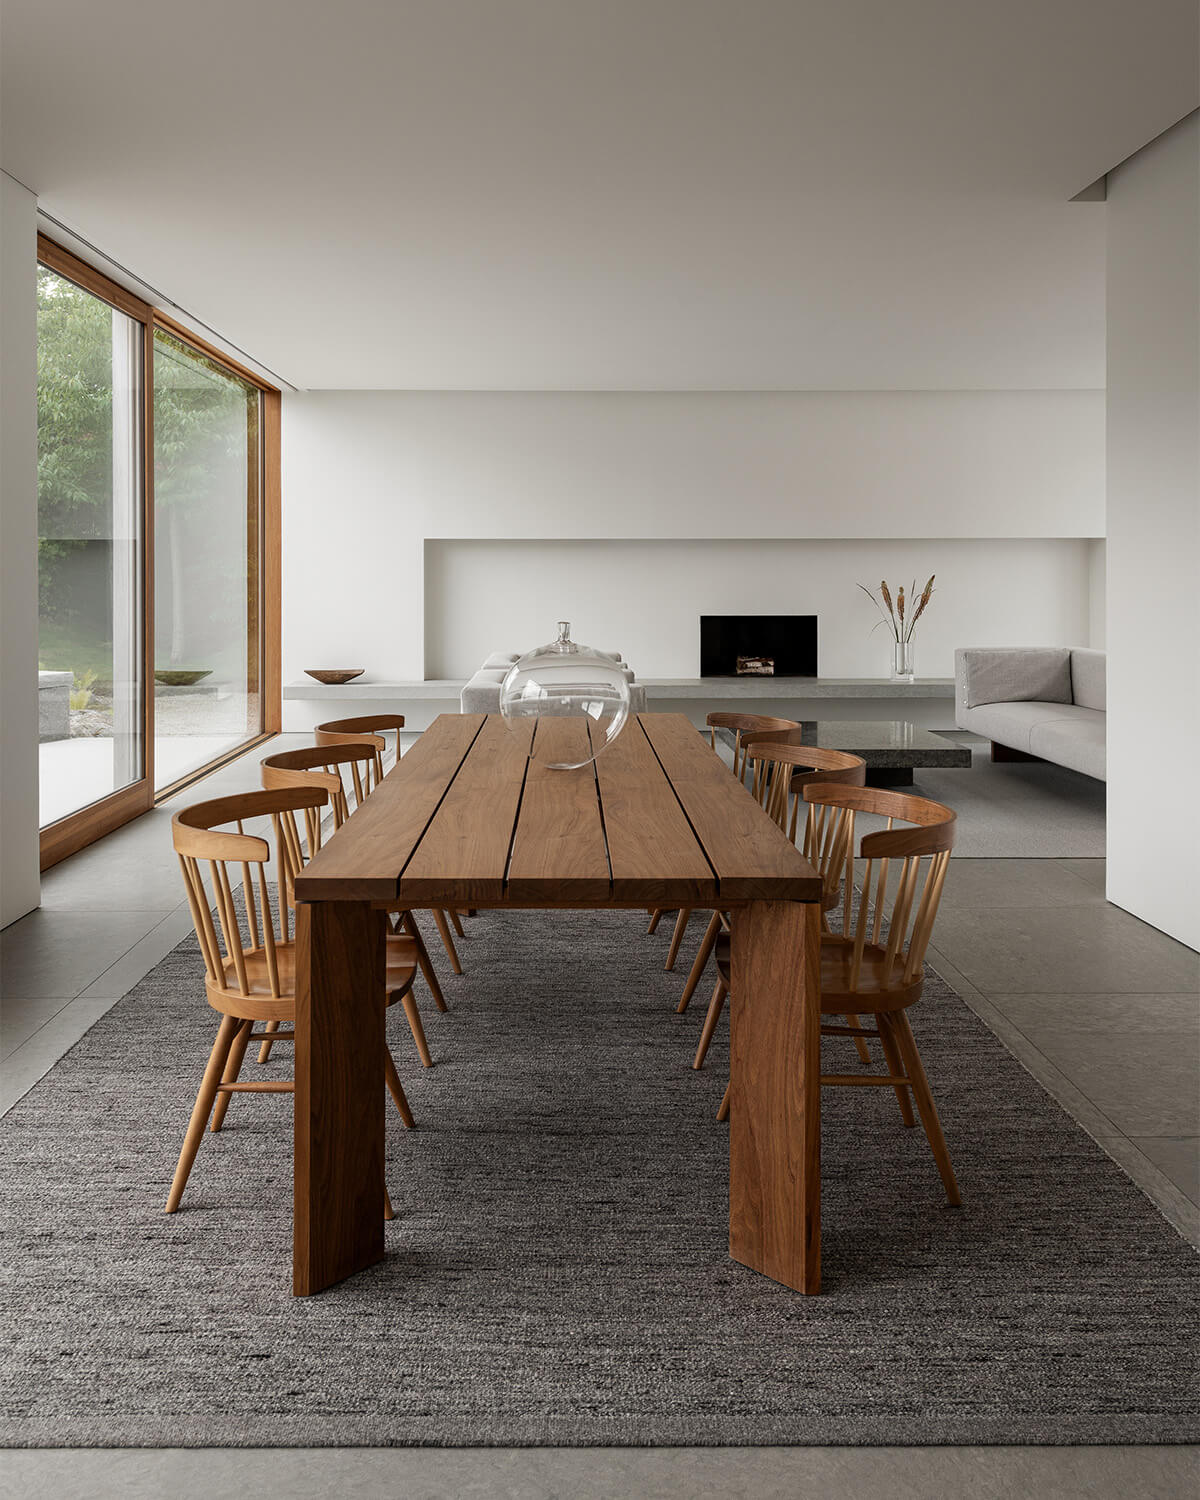 Zero in color Gray Mix shown in a contemporary house with a wooden dinner table and chairs.